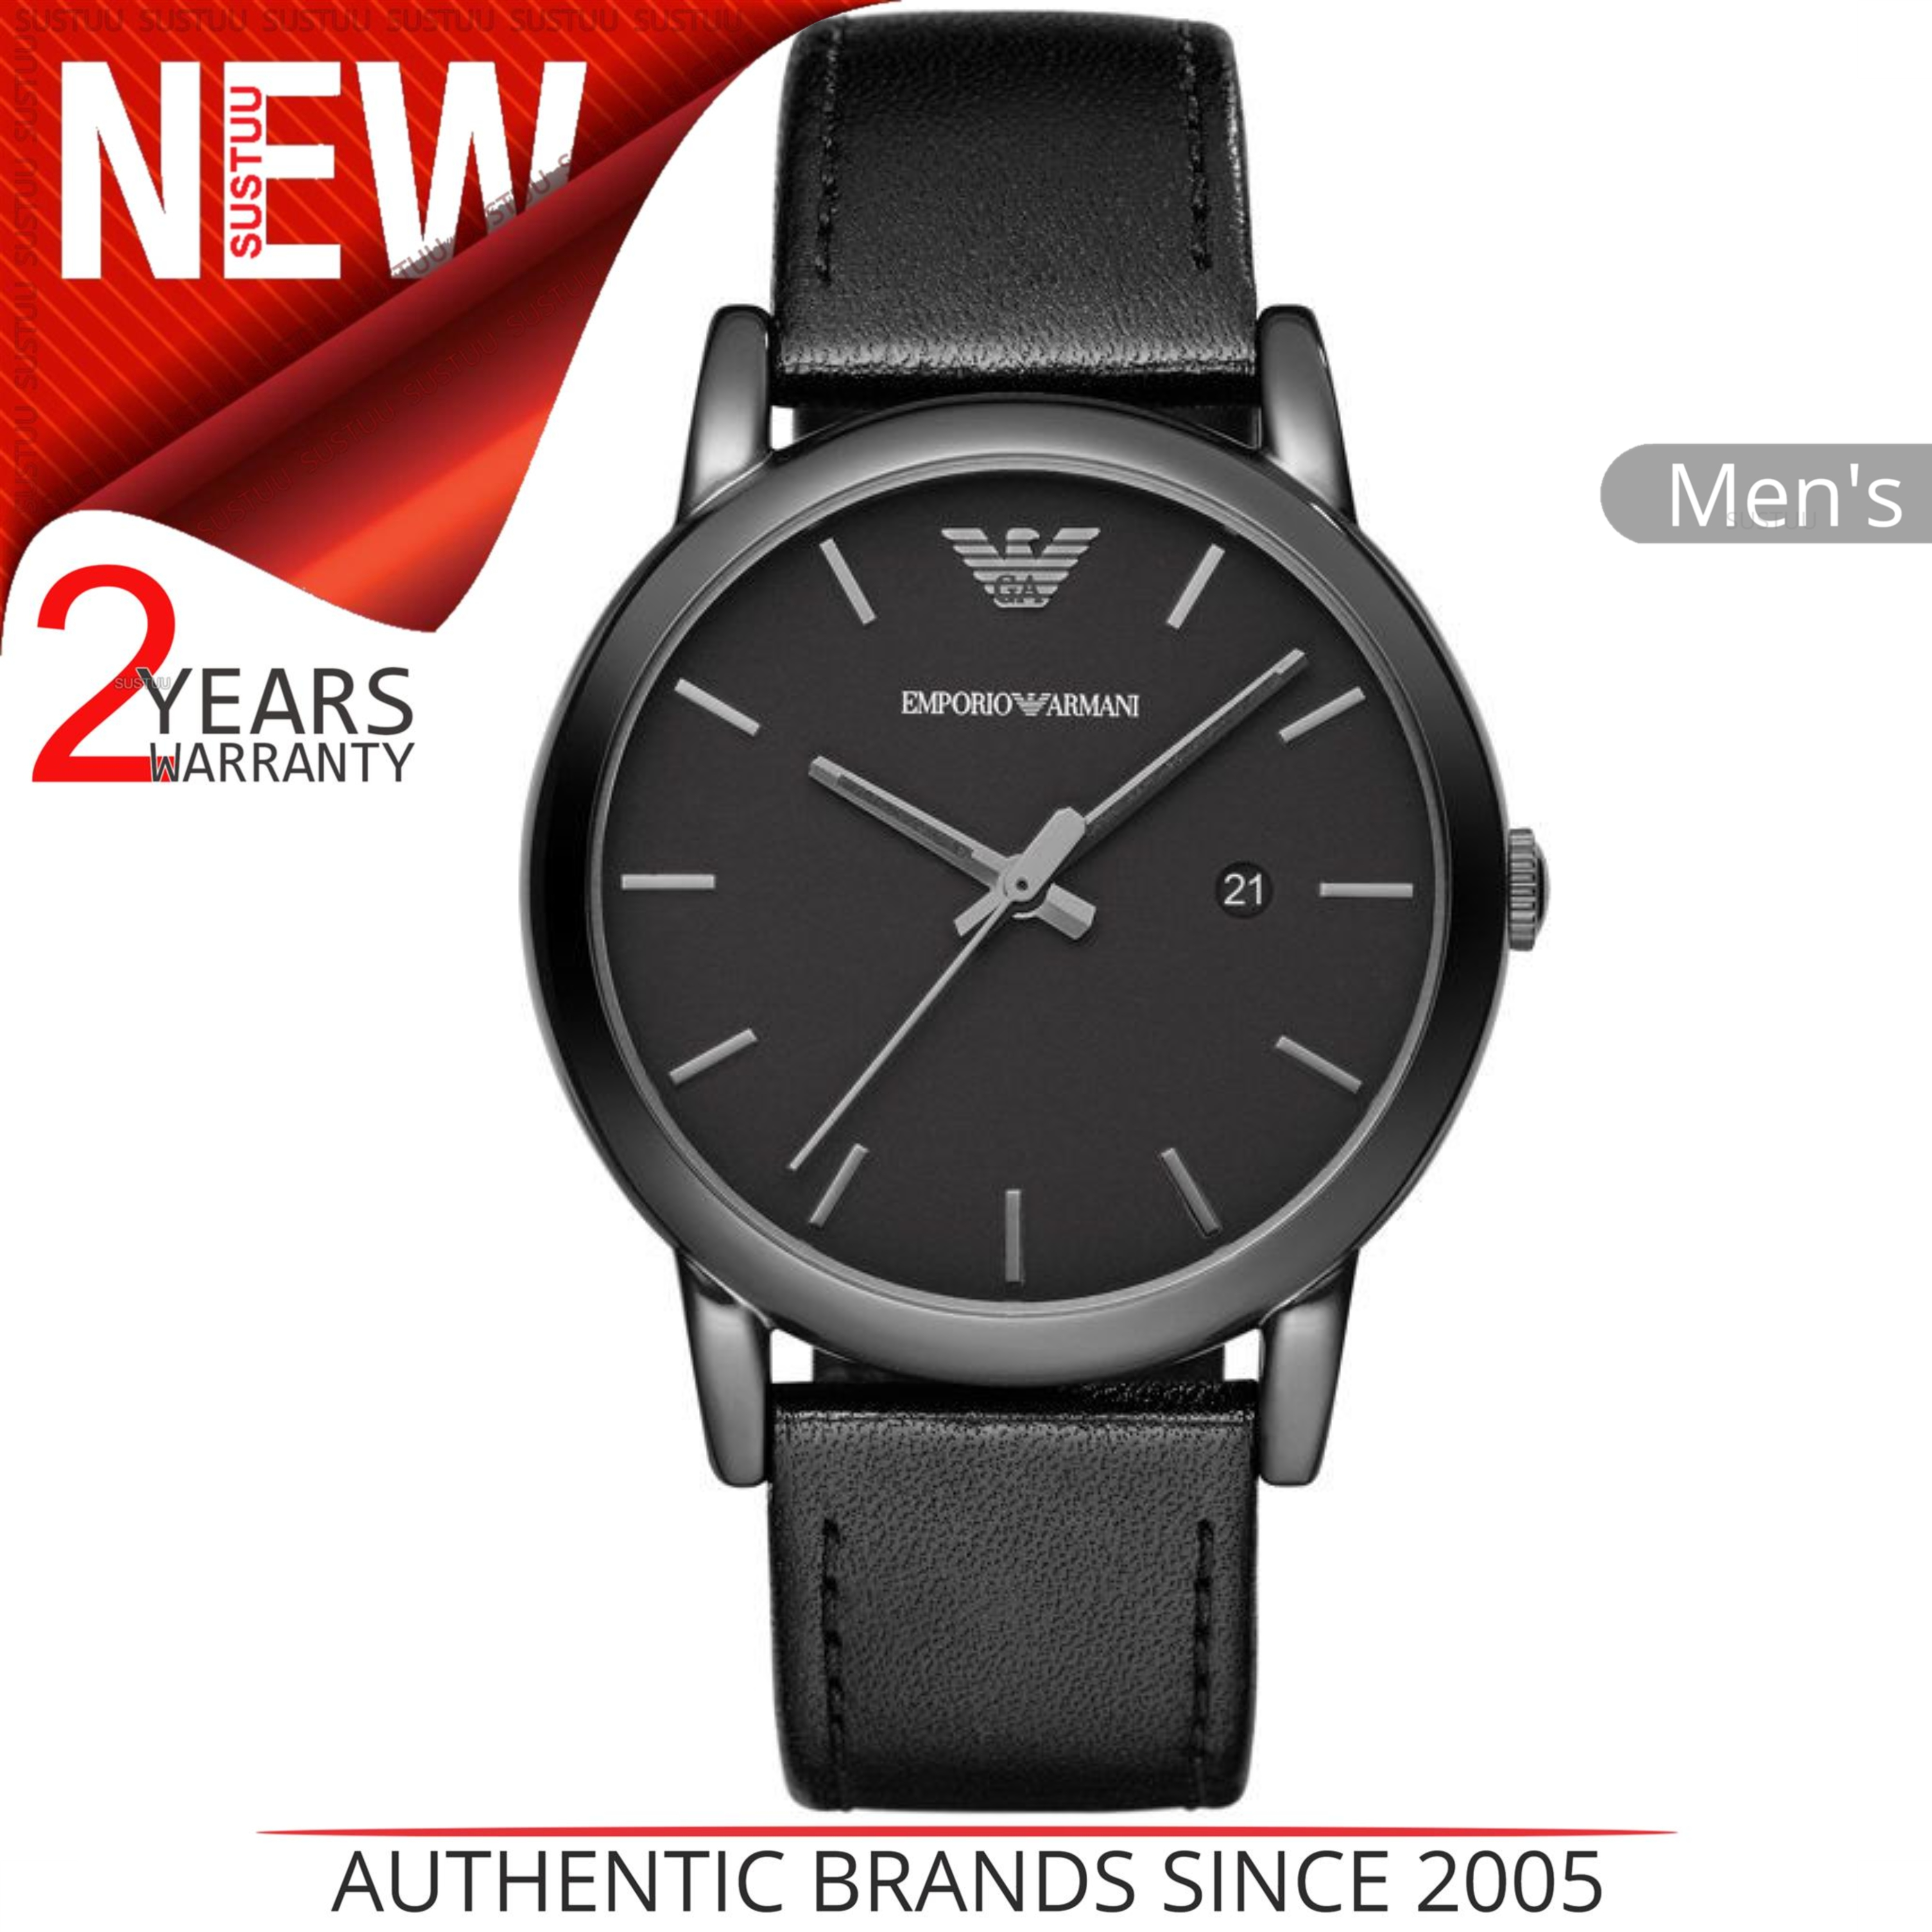 Emporio Armani Classic Mens Watch Black Ion Plated Round Dial Leather Strap 1732